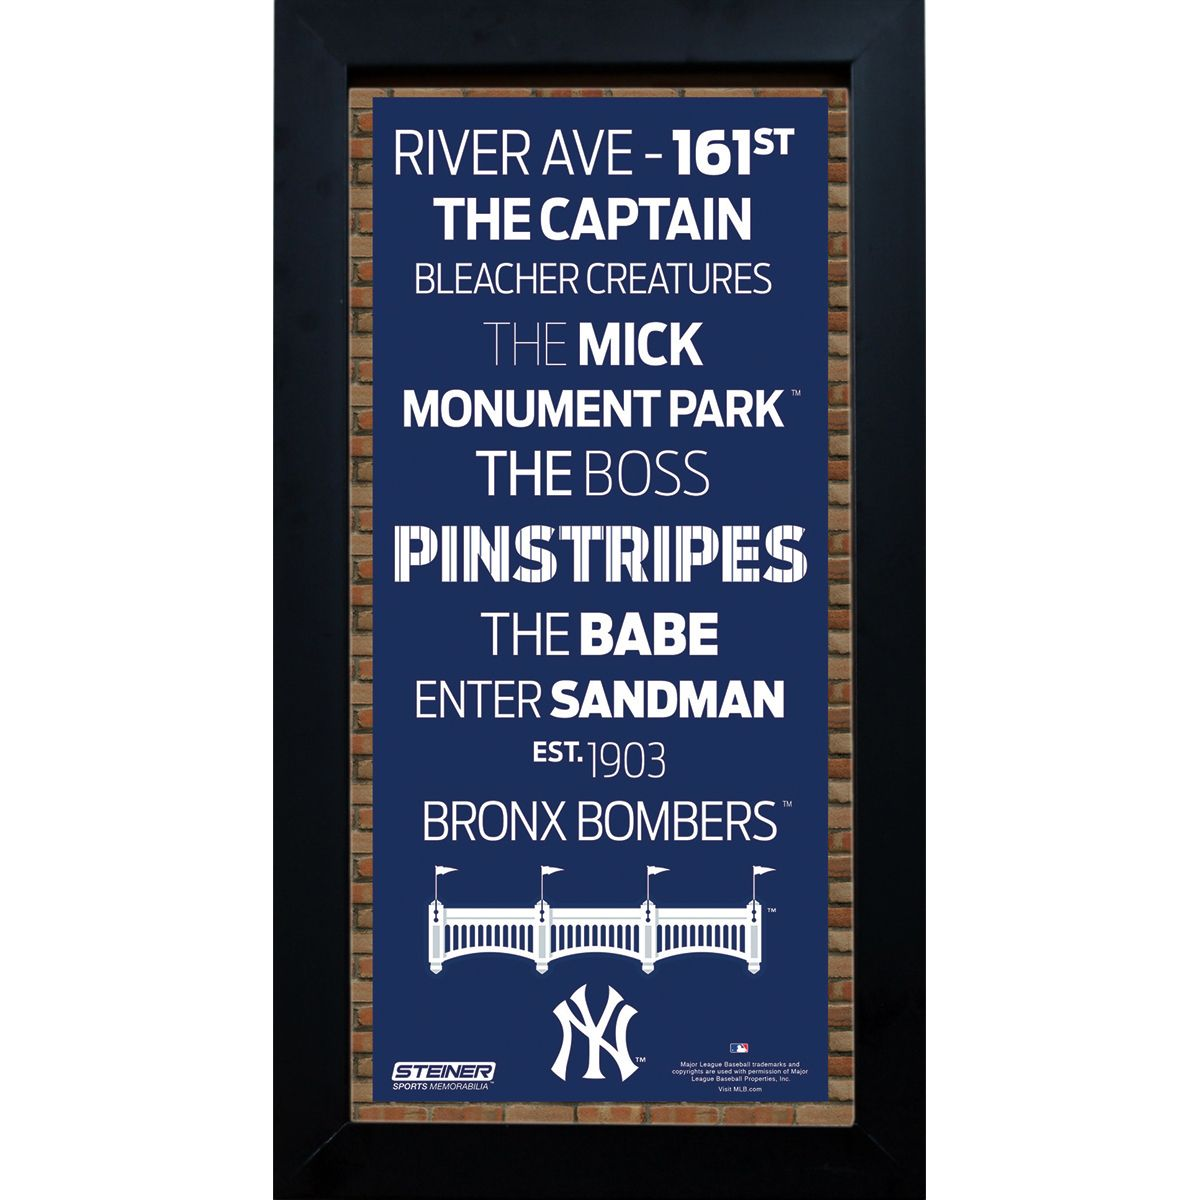 FRAMED 6X12 NEW YORK YANKEES SUBWAY SIGN - Purchase here: http://stnr.co/1UP33XI